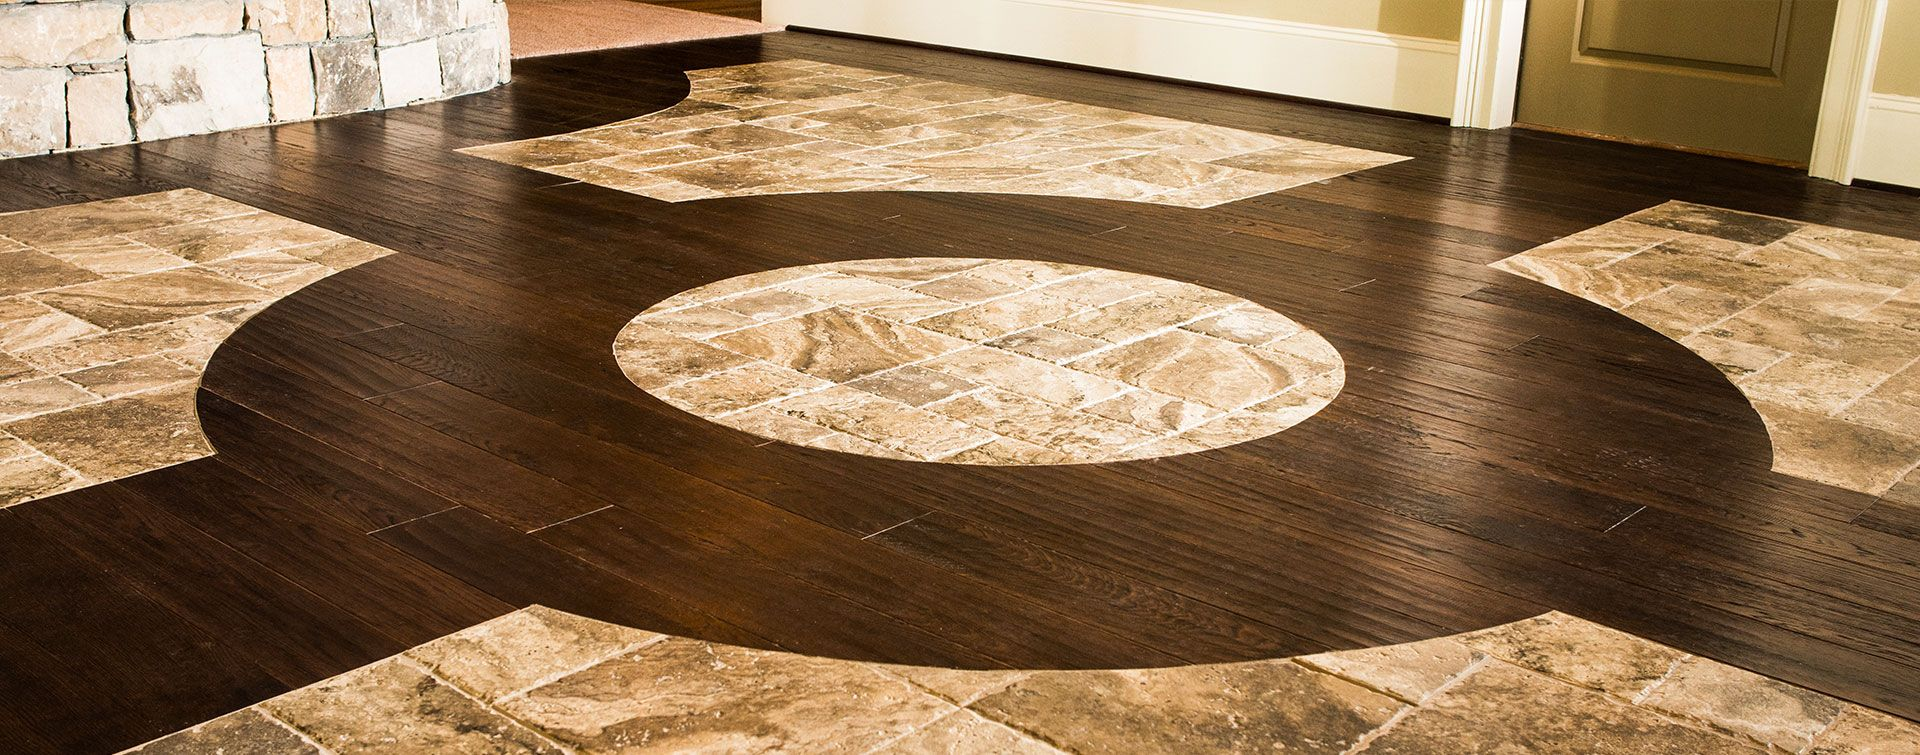 Wood tile flooring patterns google search laundry for Tile and hardwood floor